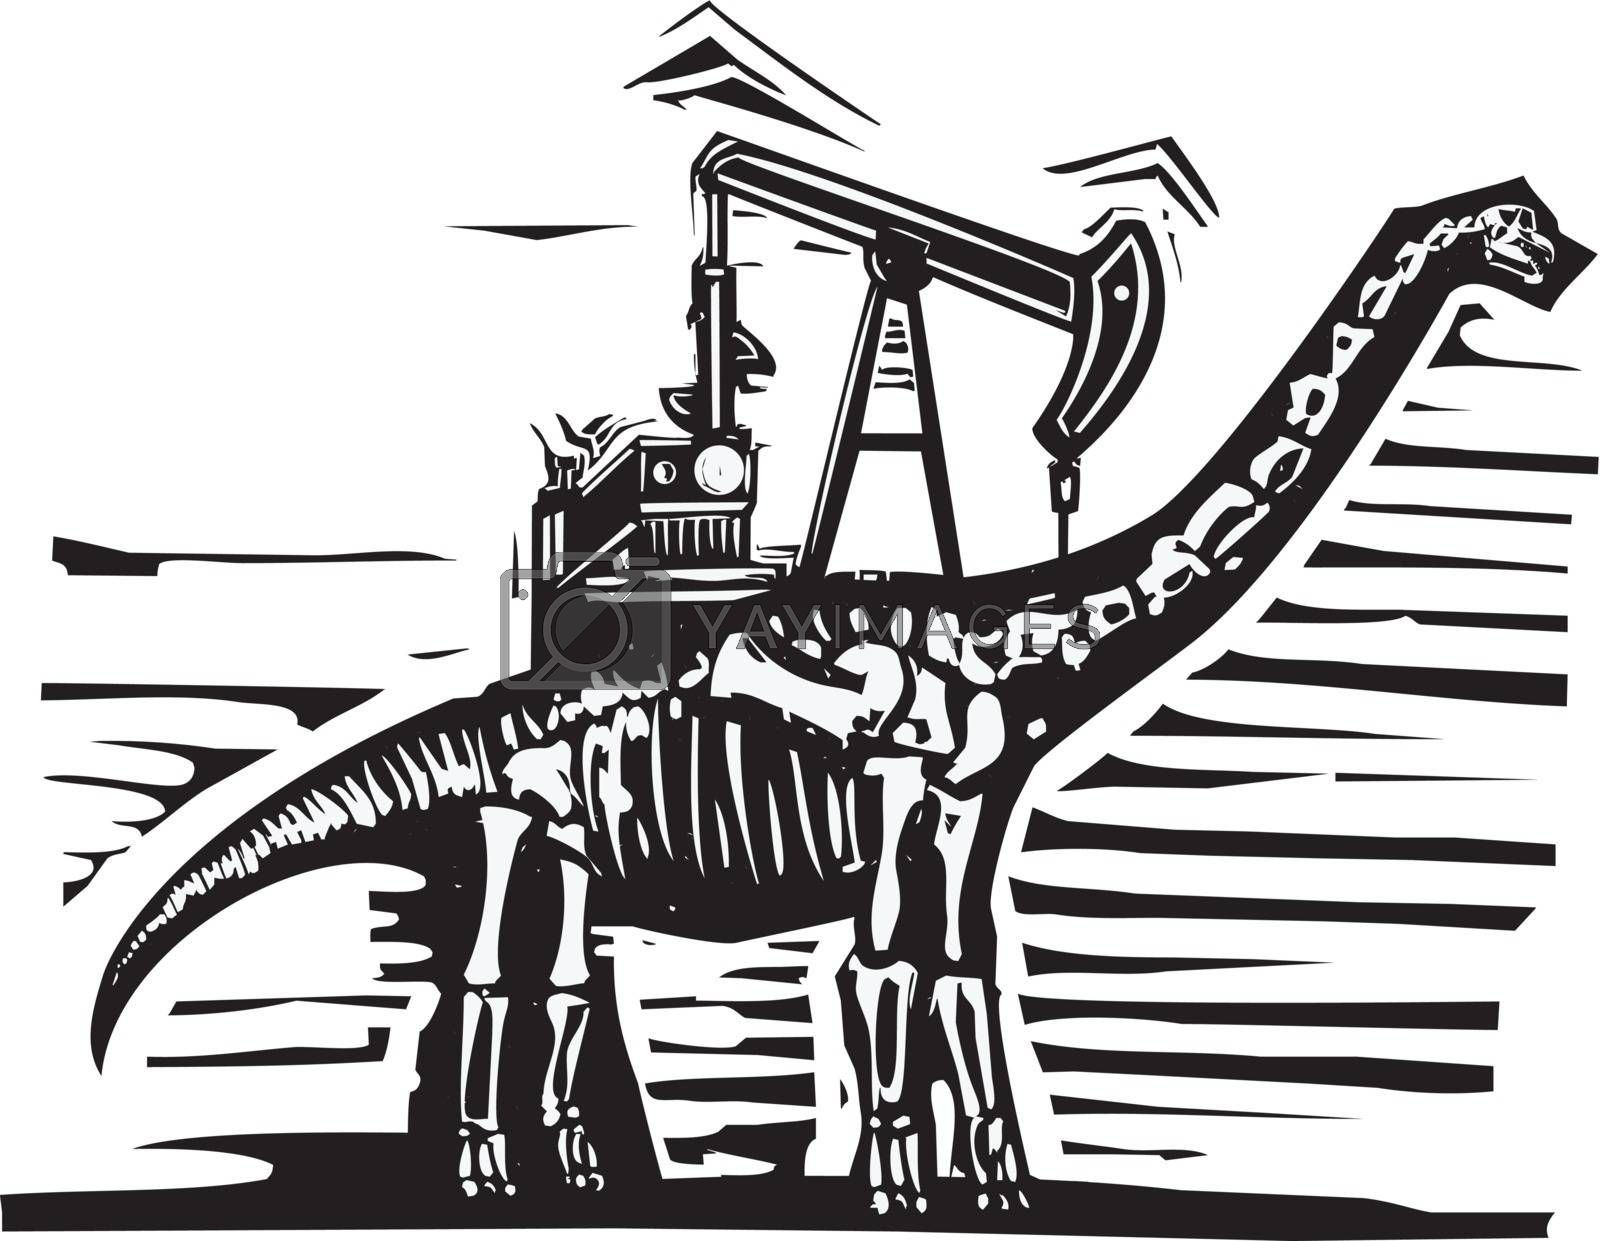 Woodcut style image of a fossil of a brontosaurus apatosaurus dinosaur with an oil well Pump Jack on its back.